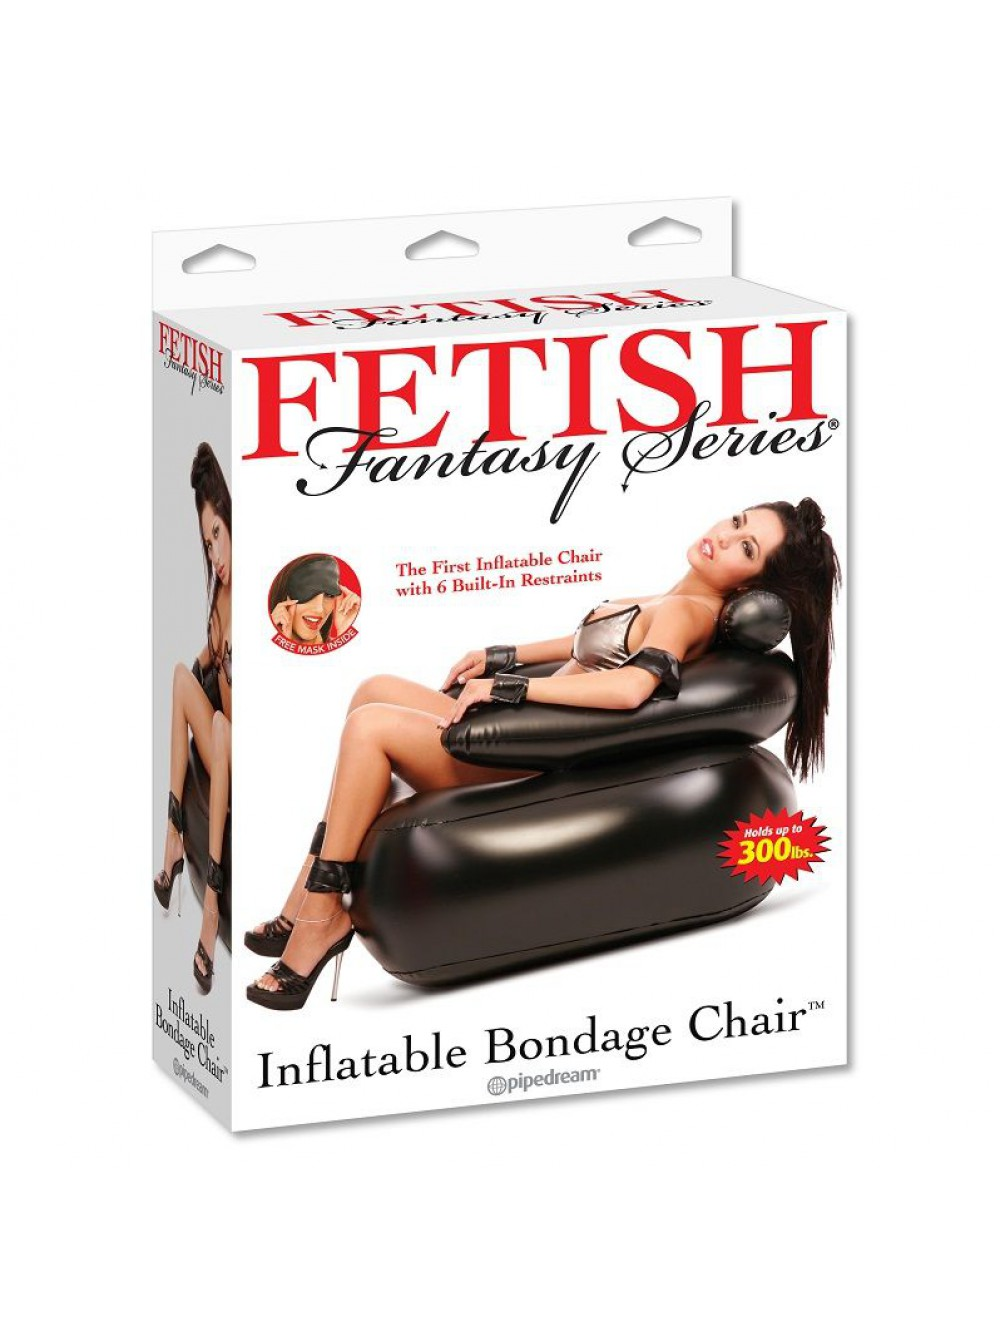 Feticismo sedia Fantasy Series Inflatable Bondage